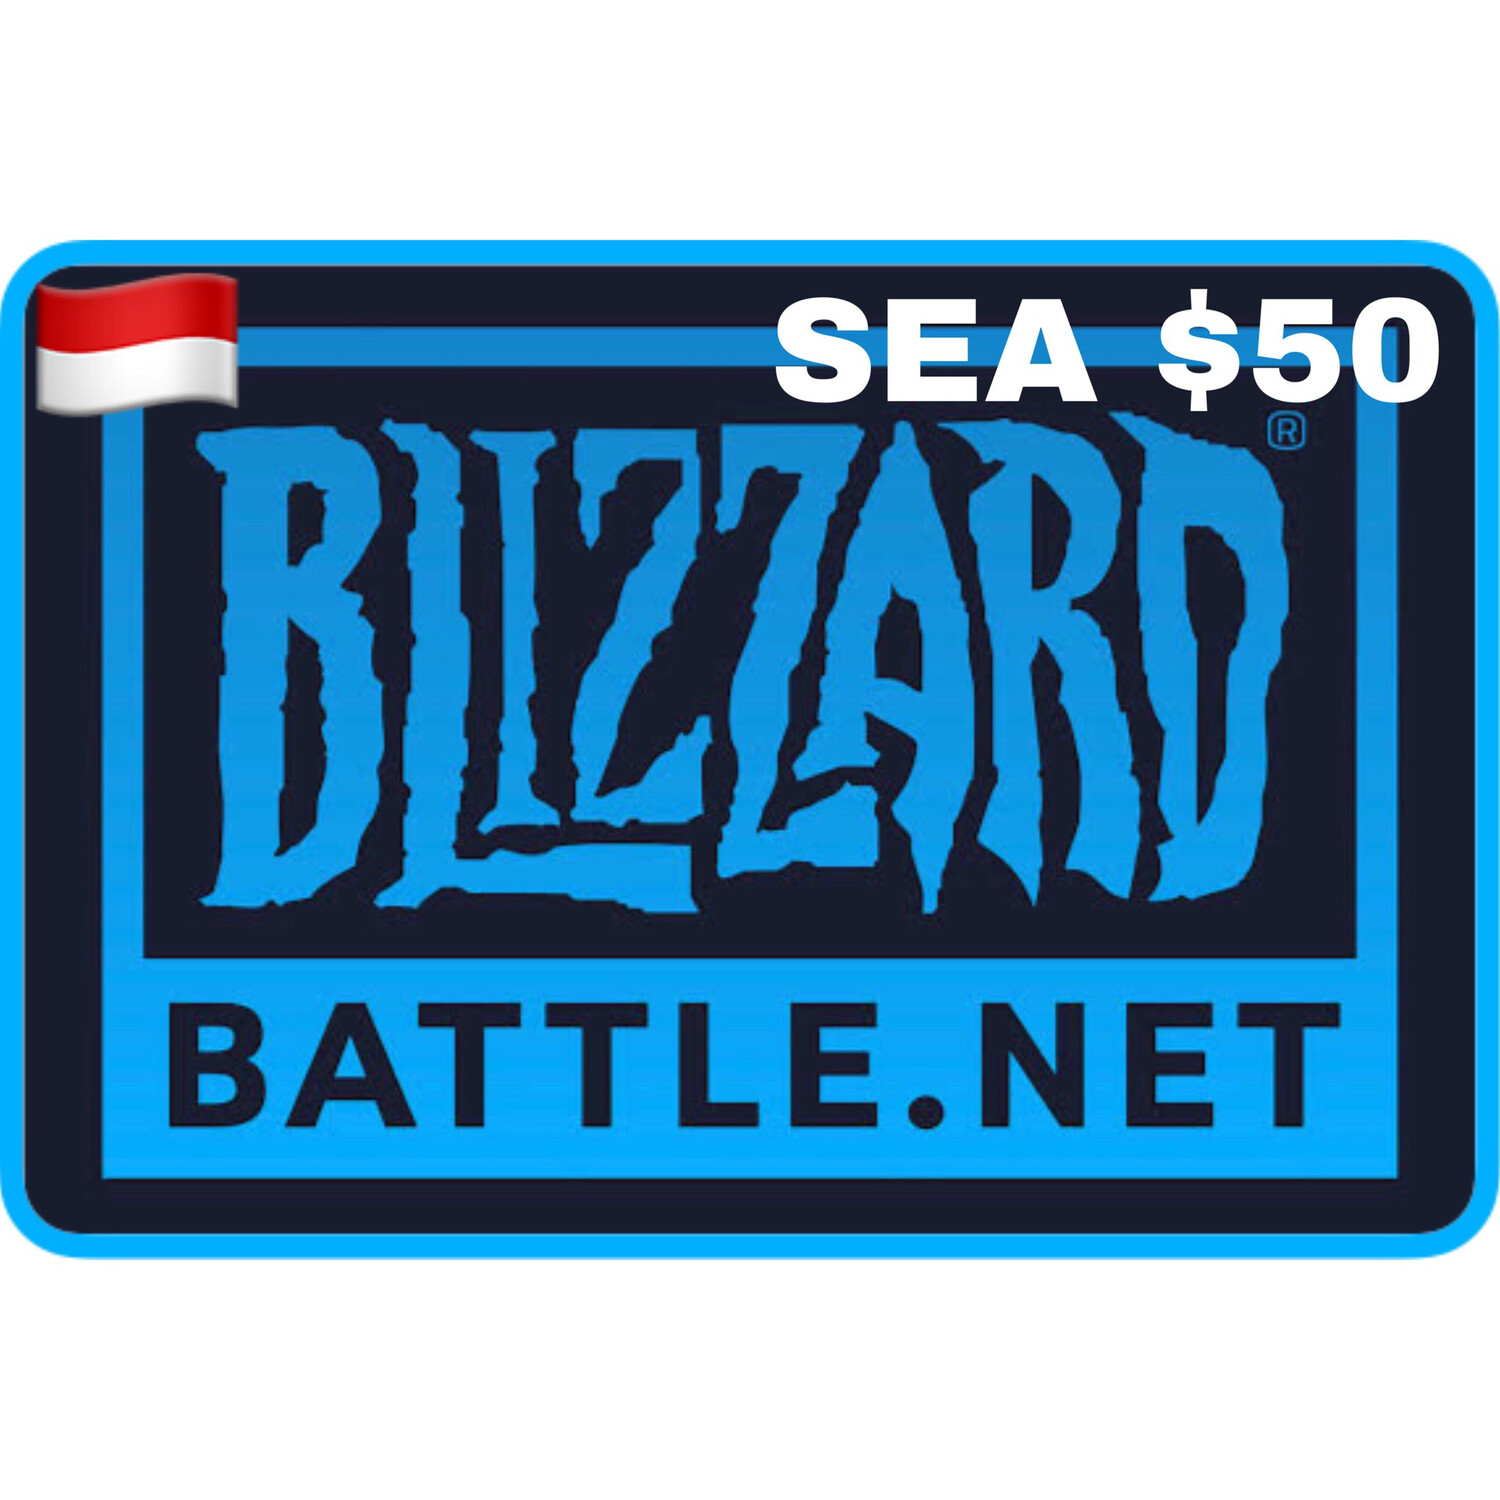 Battle.net Gift Card SEA $50 Blizzard Balance Code